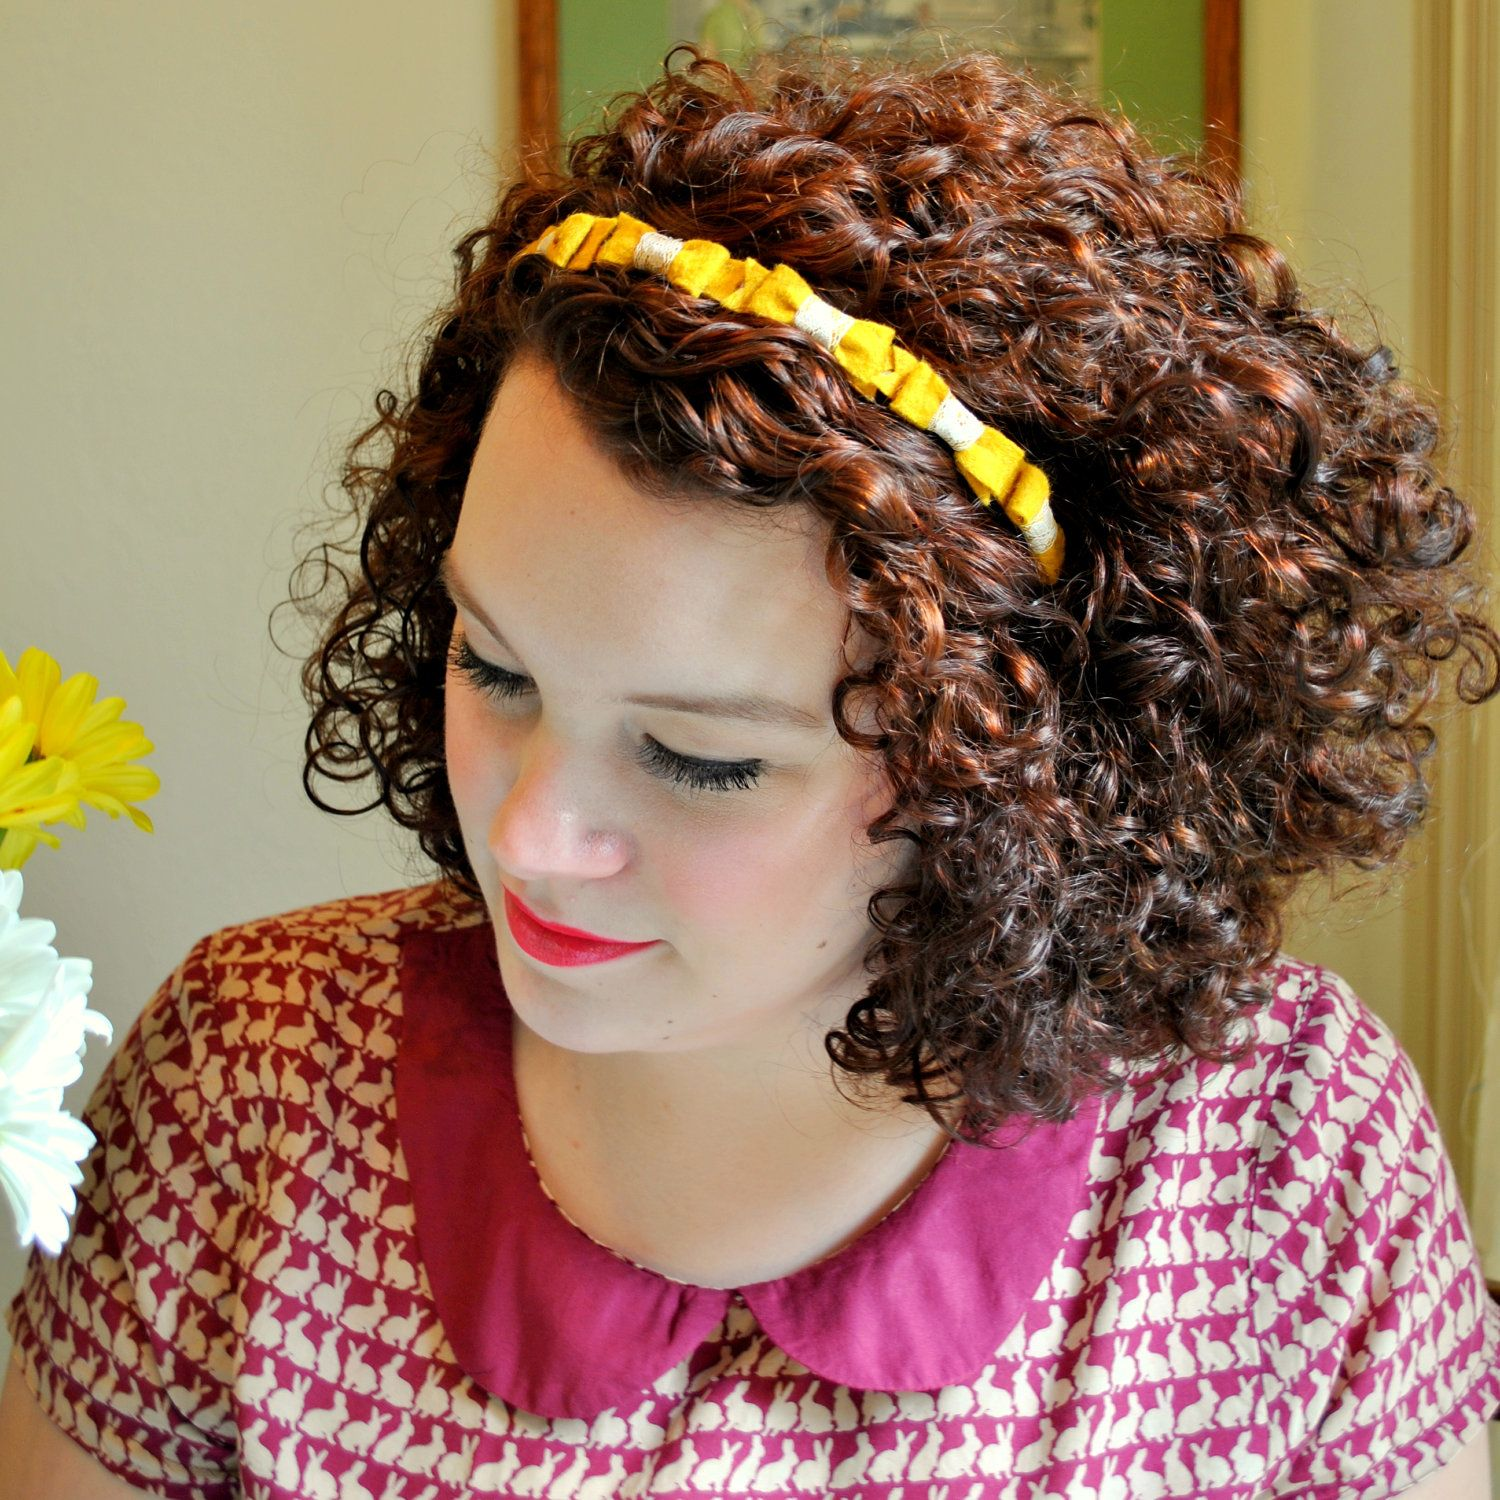 Love her curly hair curly hair donut care pinterest curly